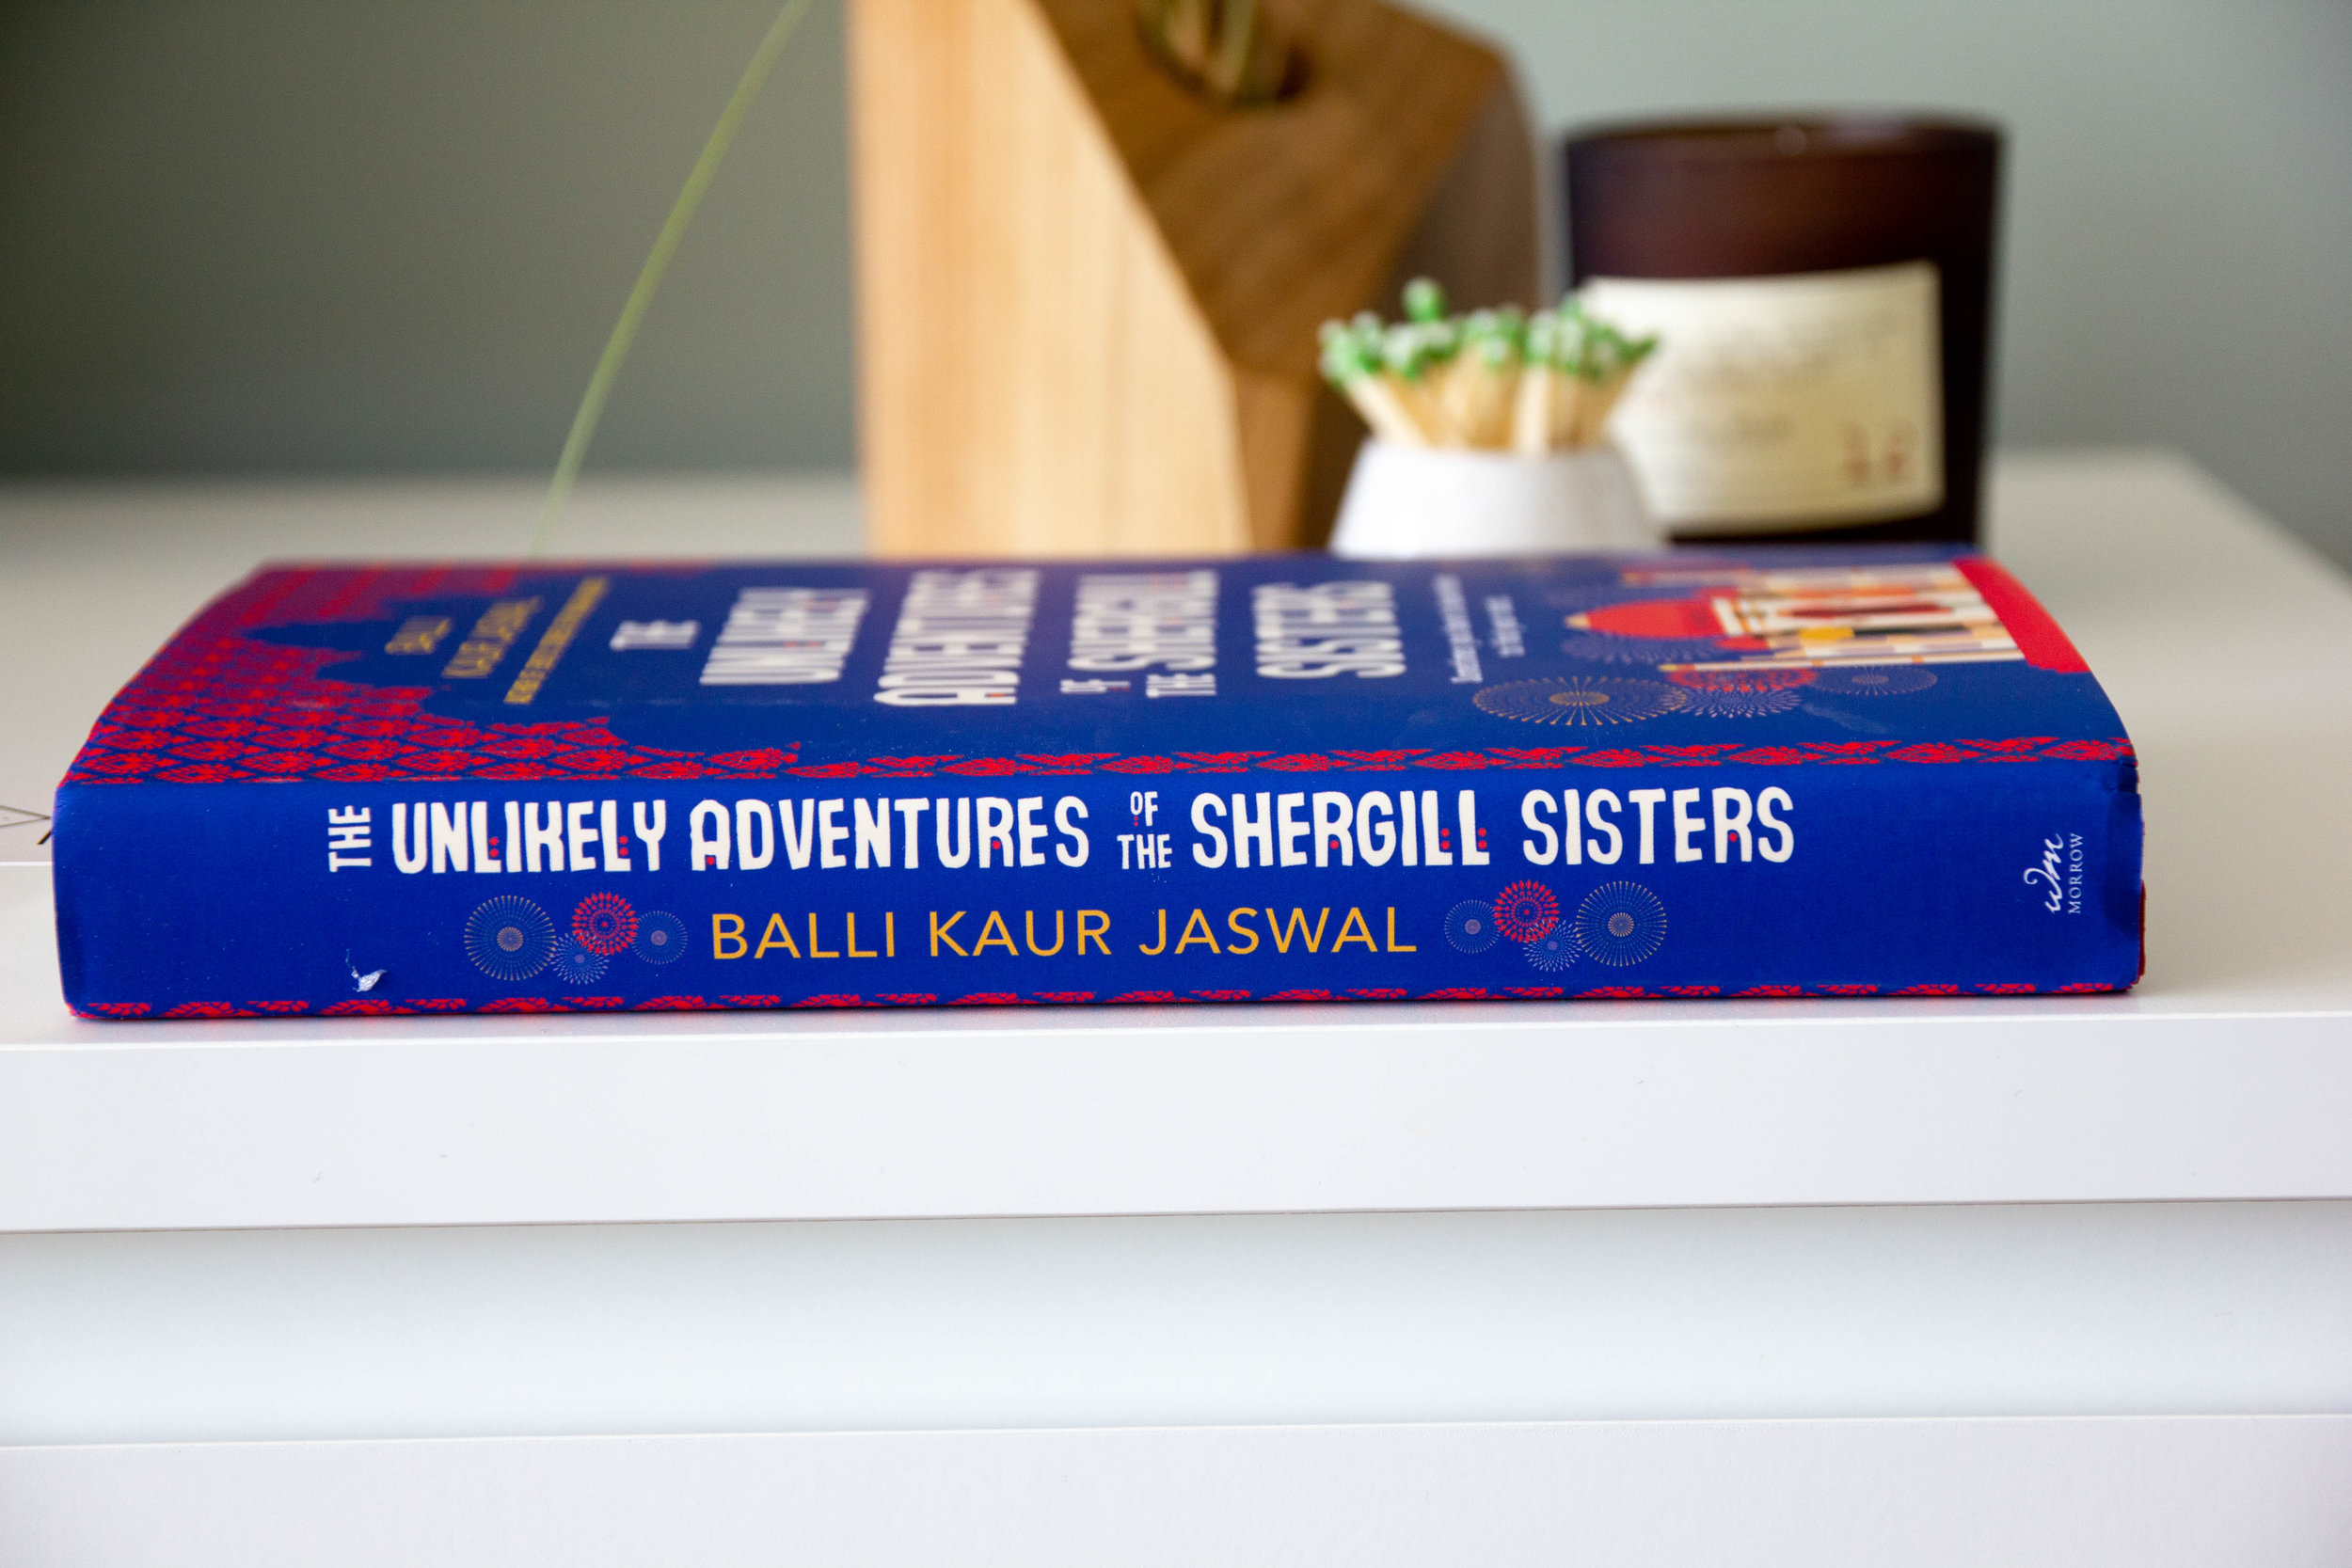 Book Feature - The Unlikely Adventures of the Shergill Sisters by Balli Kaur Jaswal